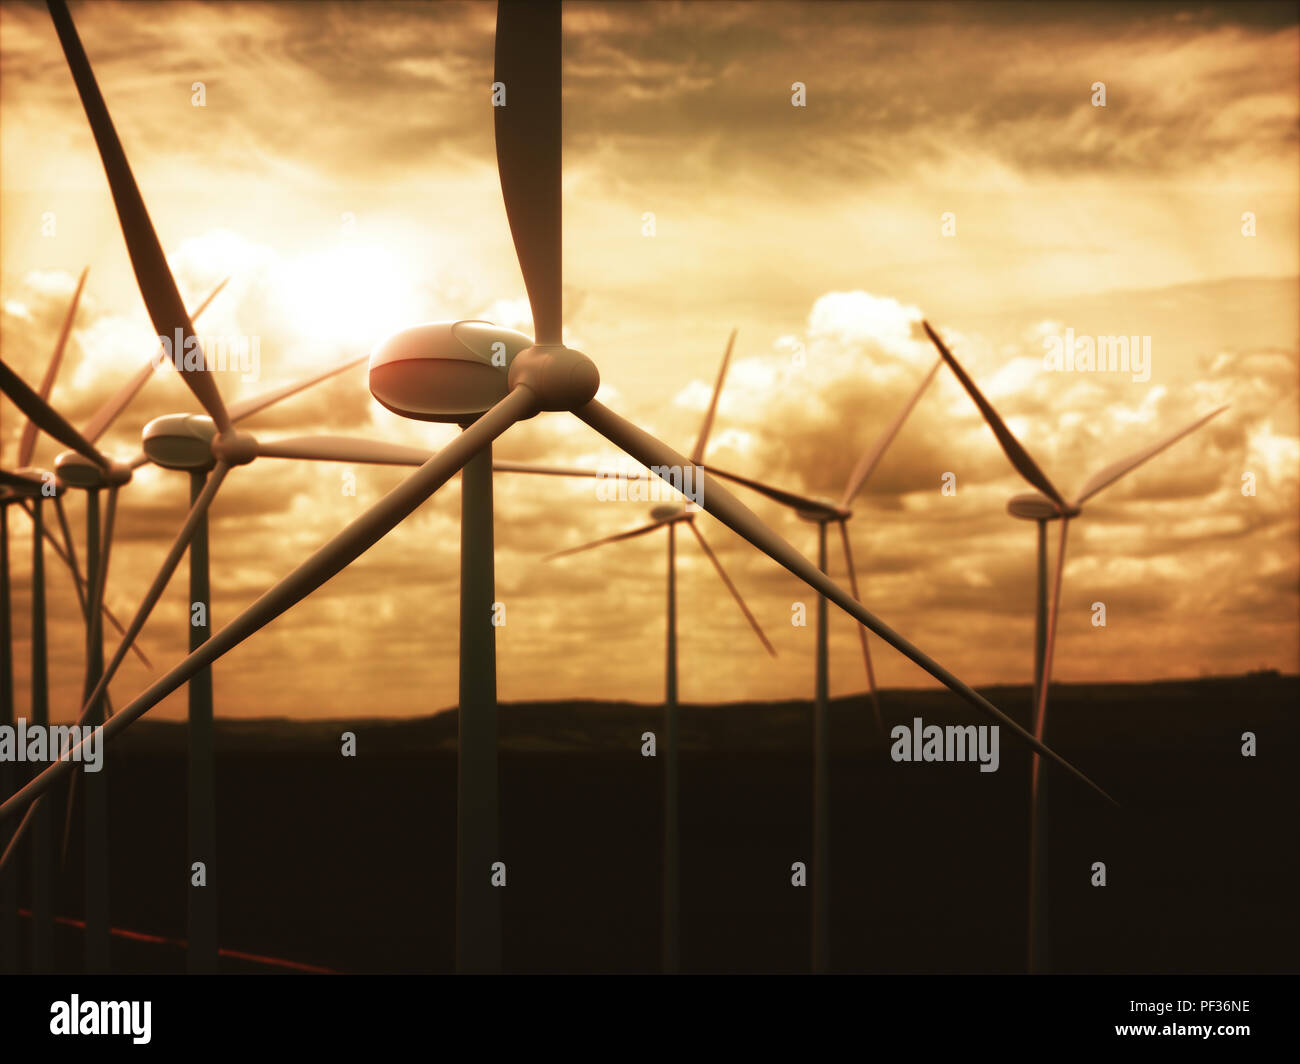 Wind farms in wind power generation. Mechanical energy being transformed into electrical energy. - Stock Image